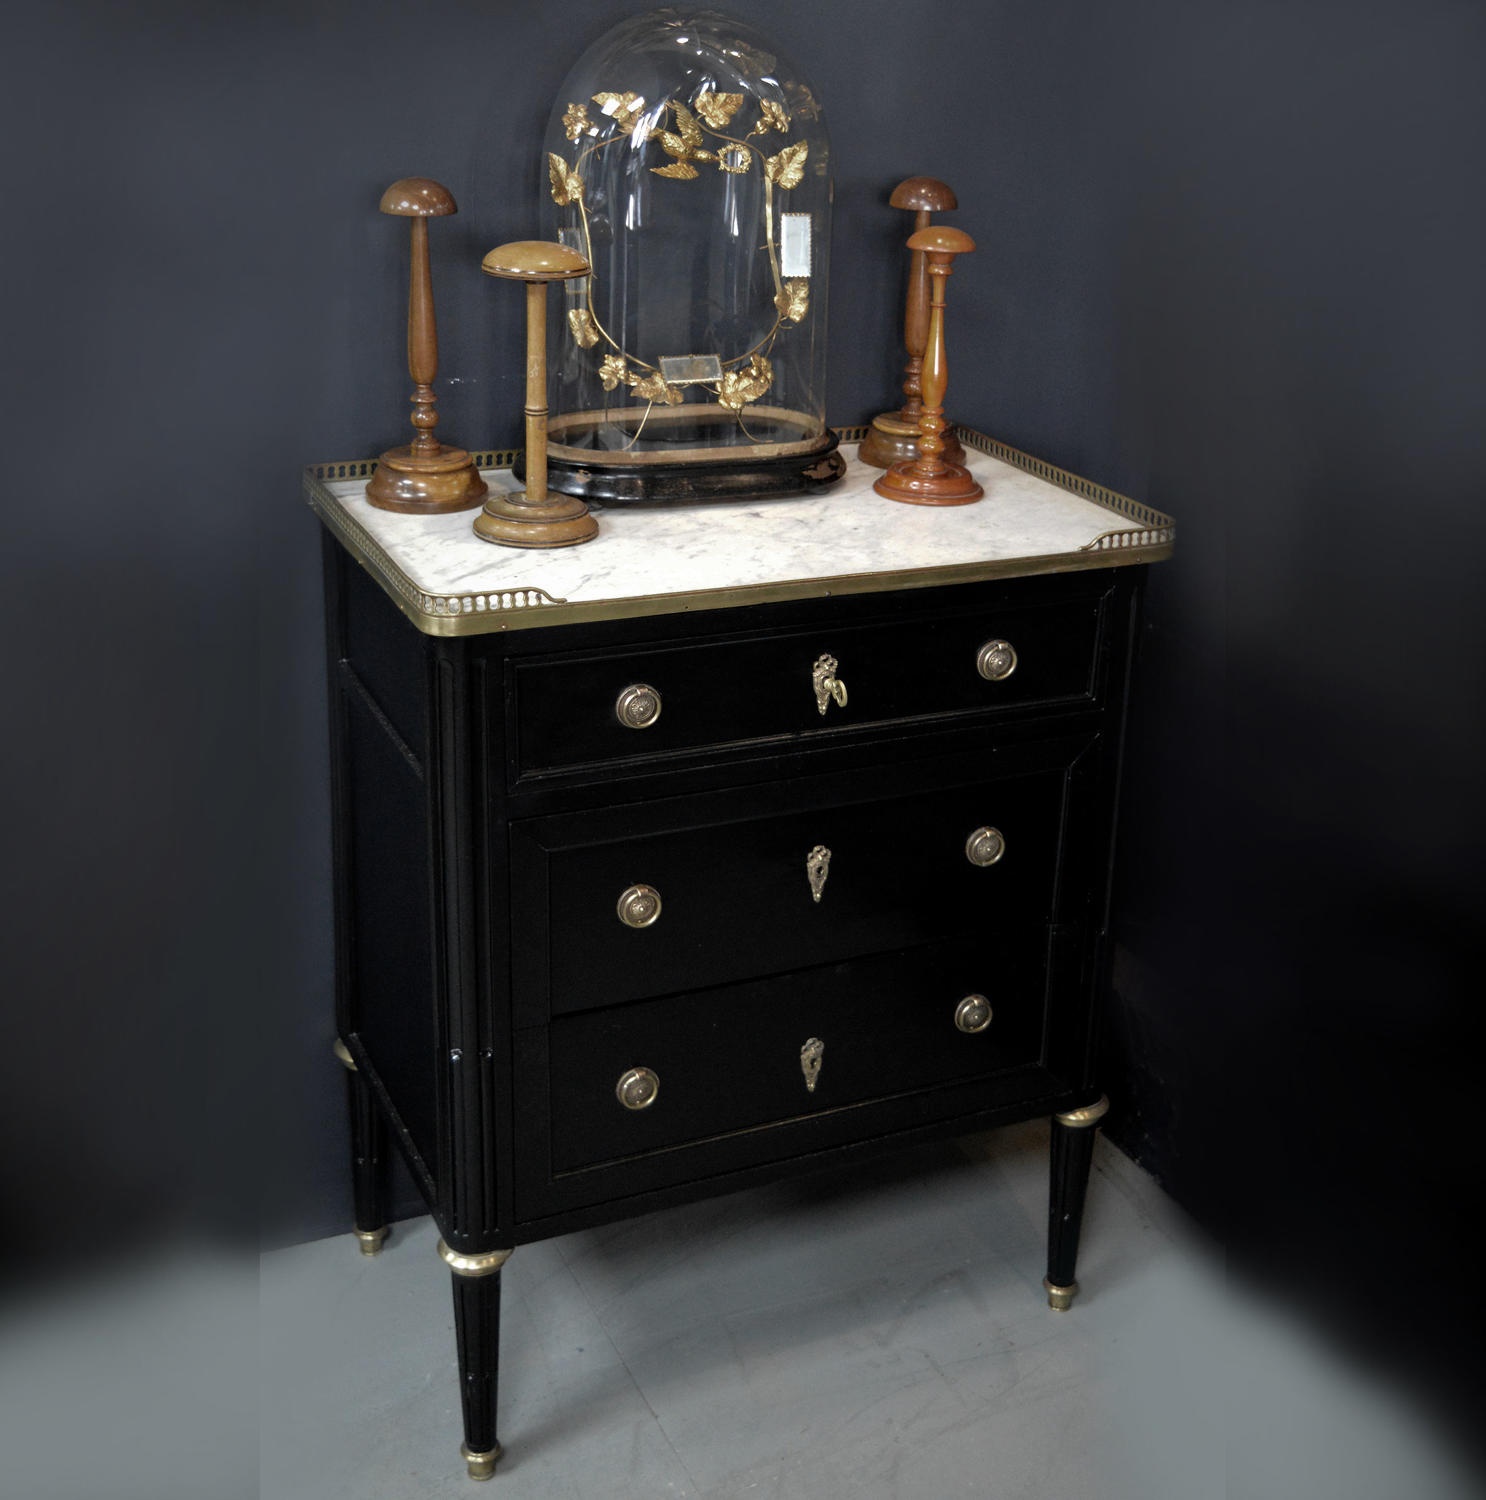 Small Louis XVI style marble top commode c1890-1900